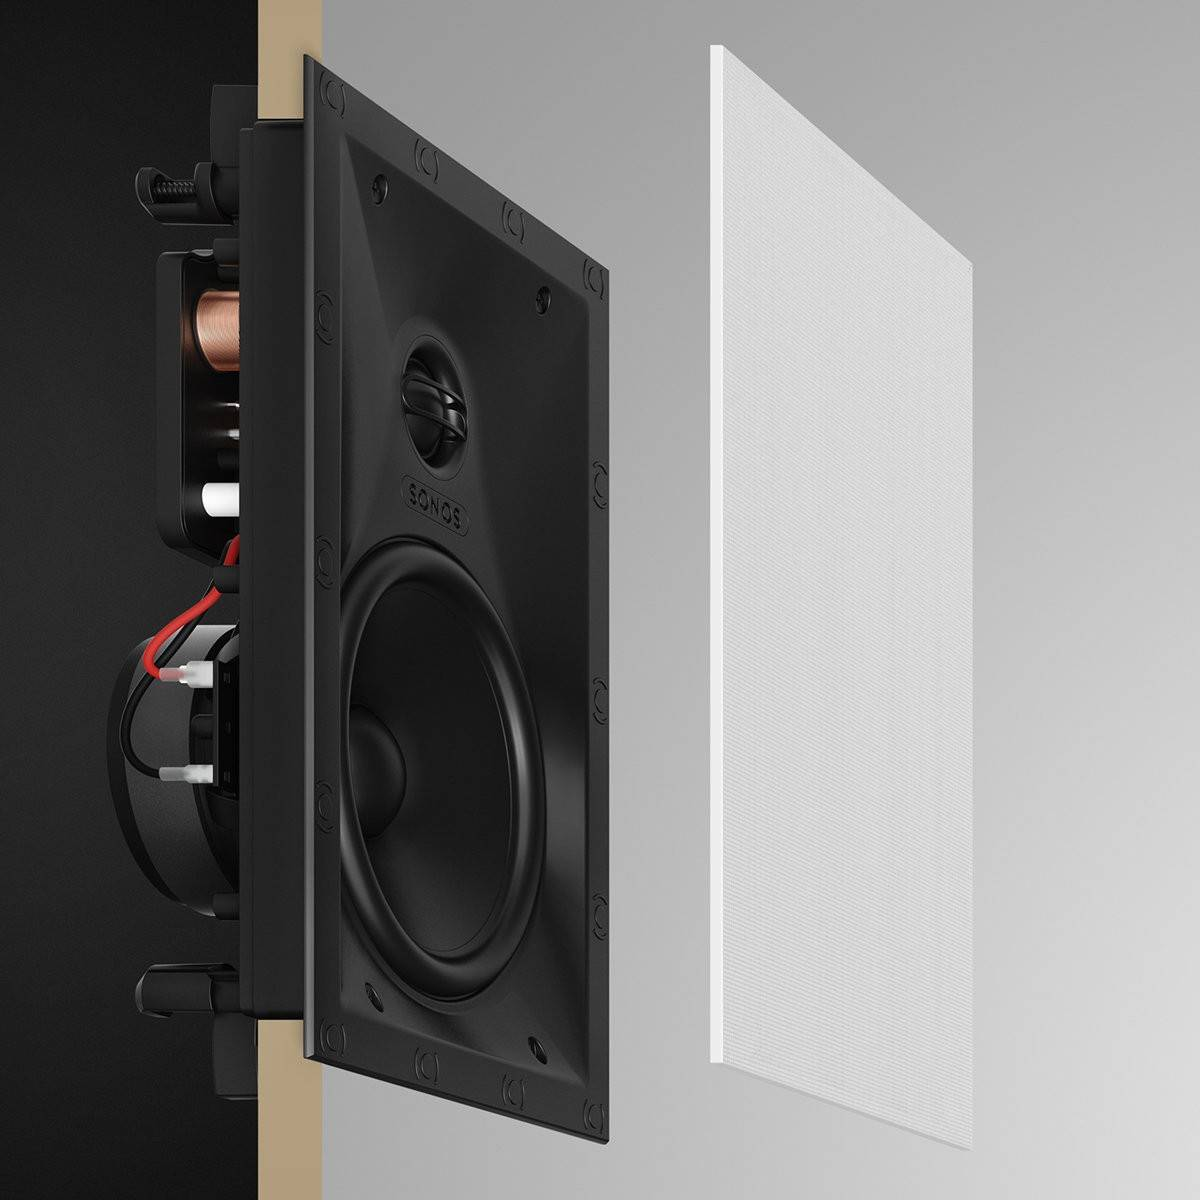 Sonos INWLLWW1 In-Wall Speakers - Pair of Architectural Speakers by Sonance for Focused Listening - 2071MALL